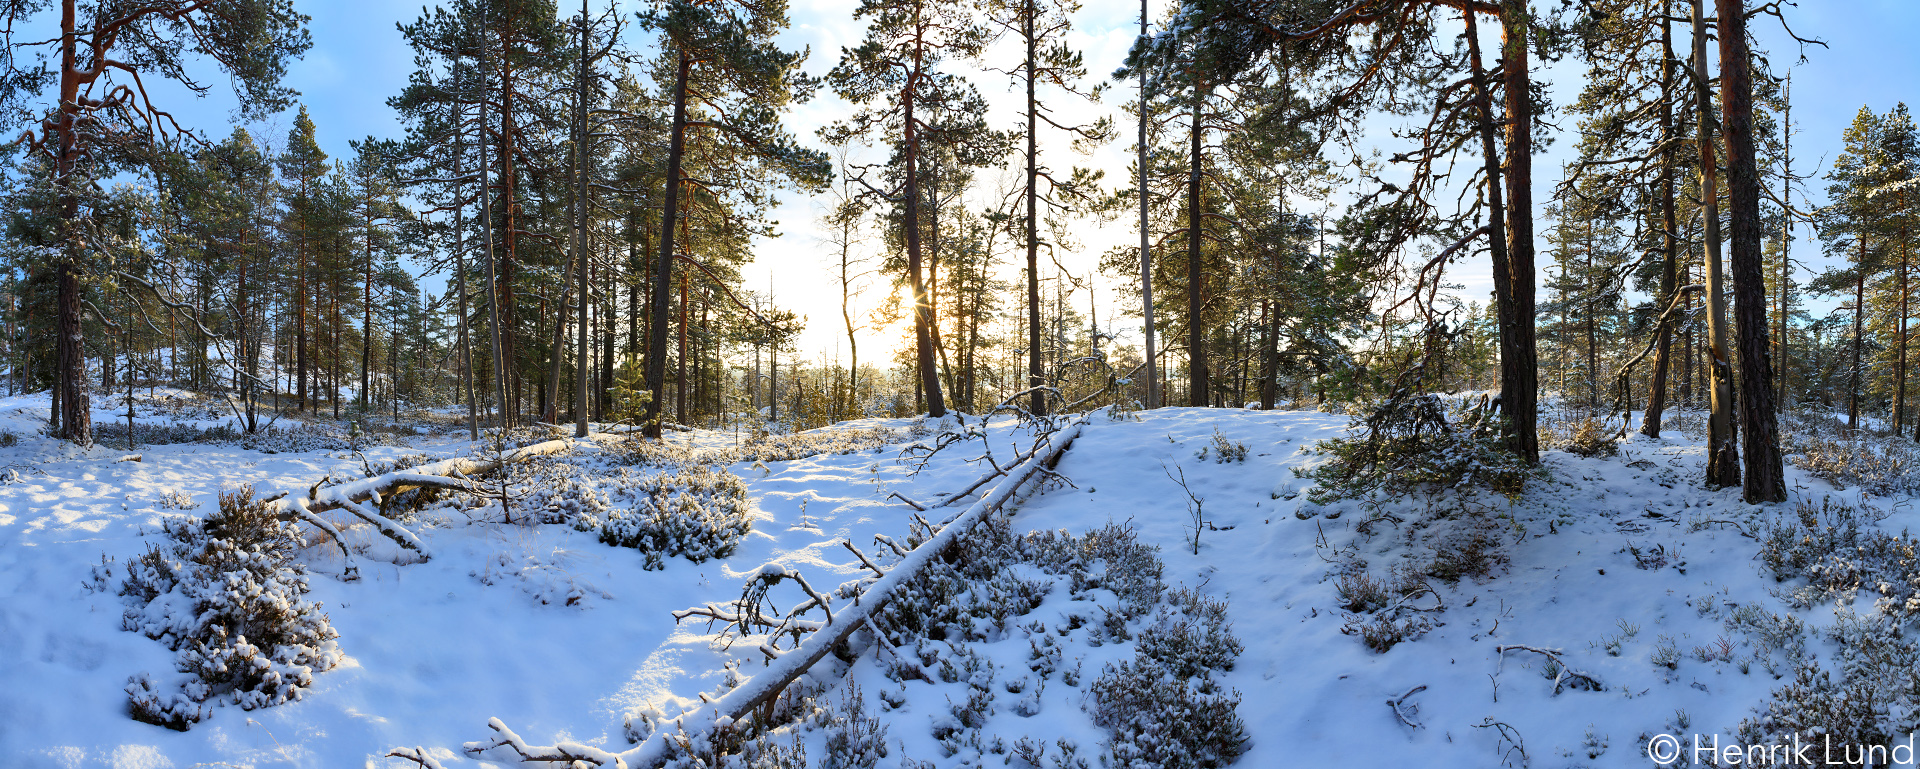 Winter panoramic view over Gamlasberget, Lappträsk, Finland. December 2016.